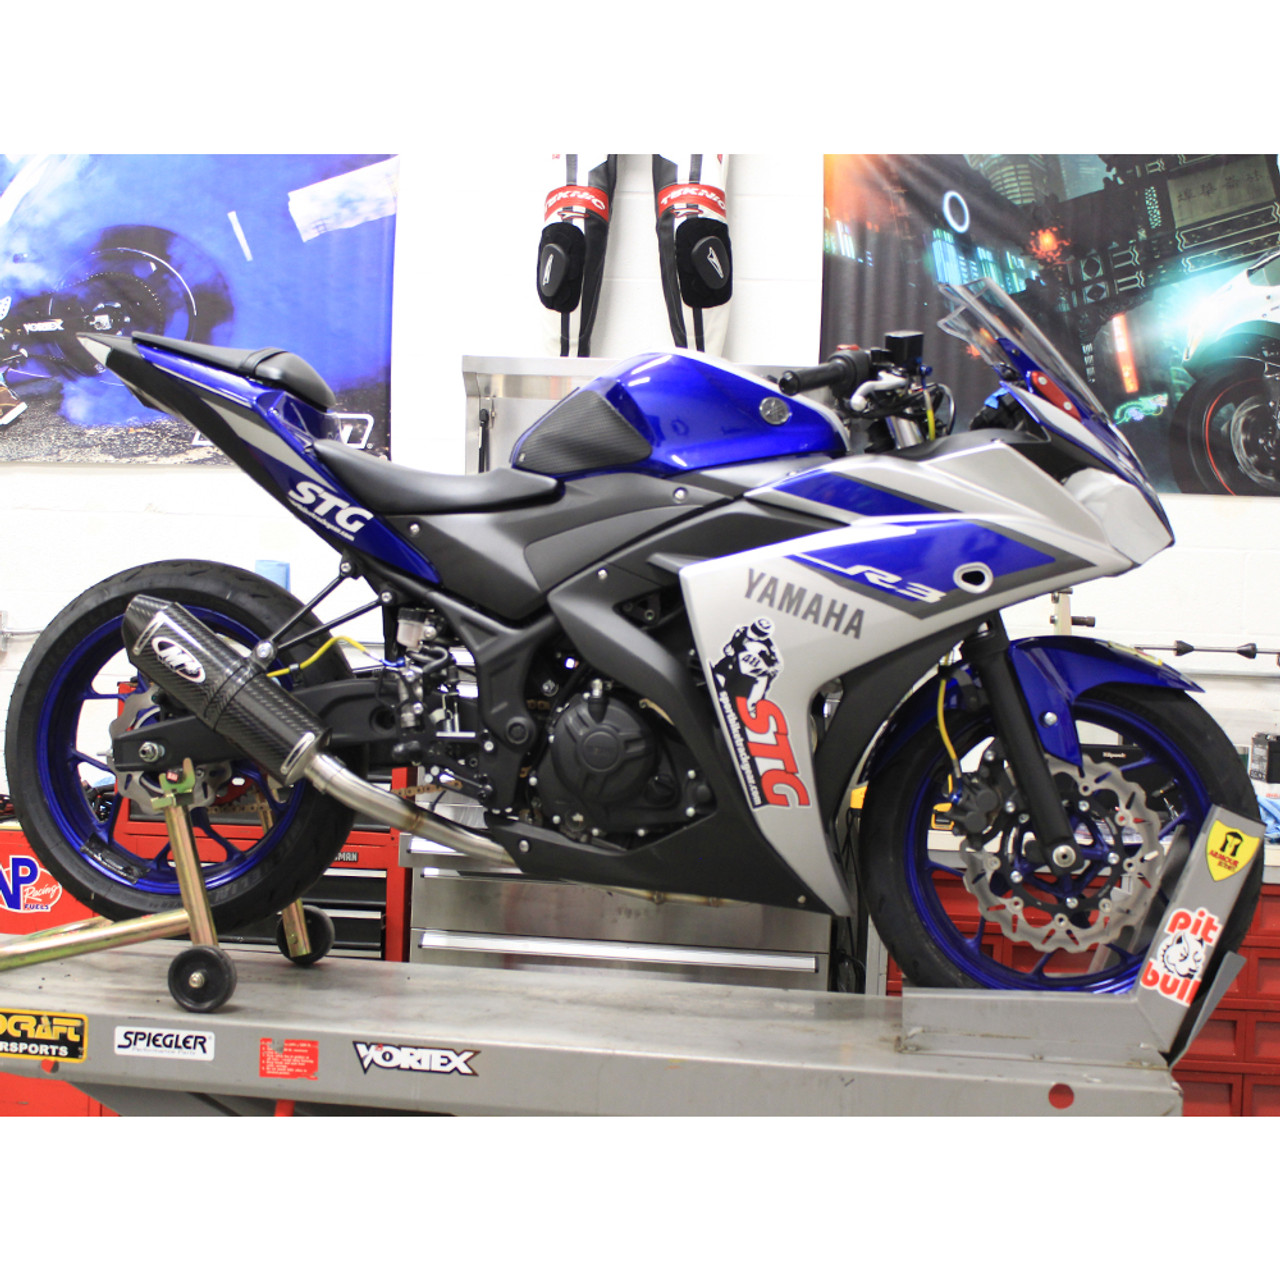 Full Motorcycle Helmet >> 2015-2018 Yamaha R3 M4 Full Exhaust System